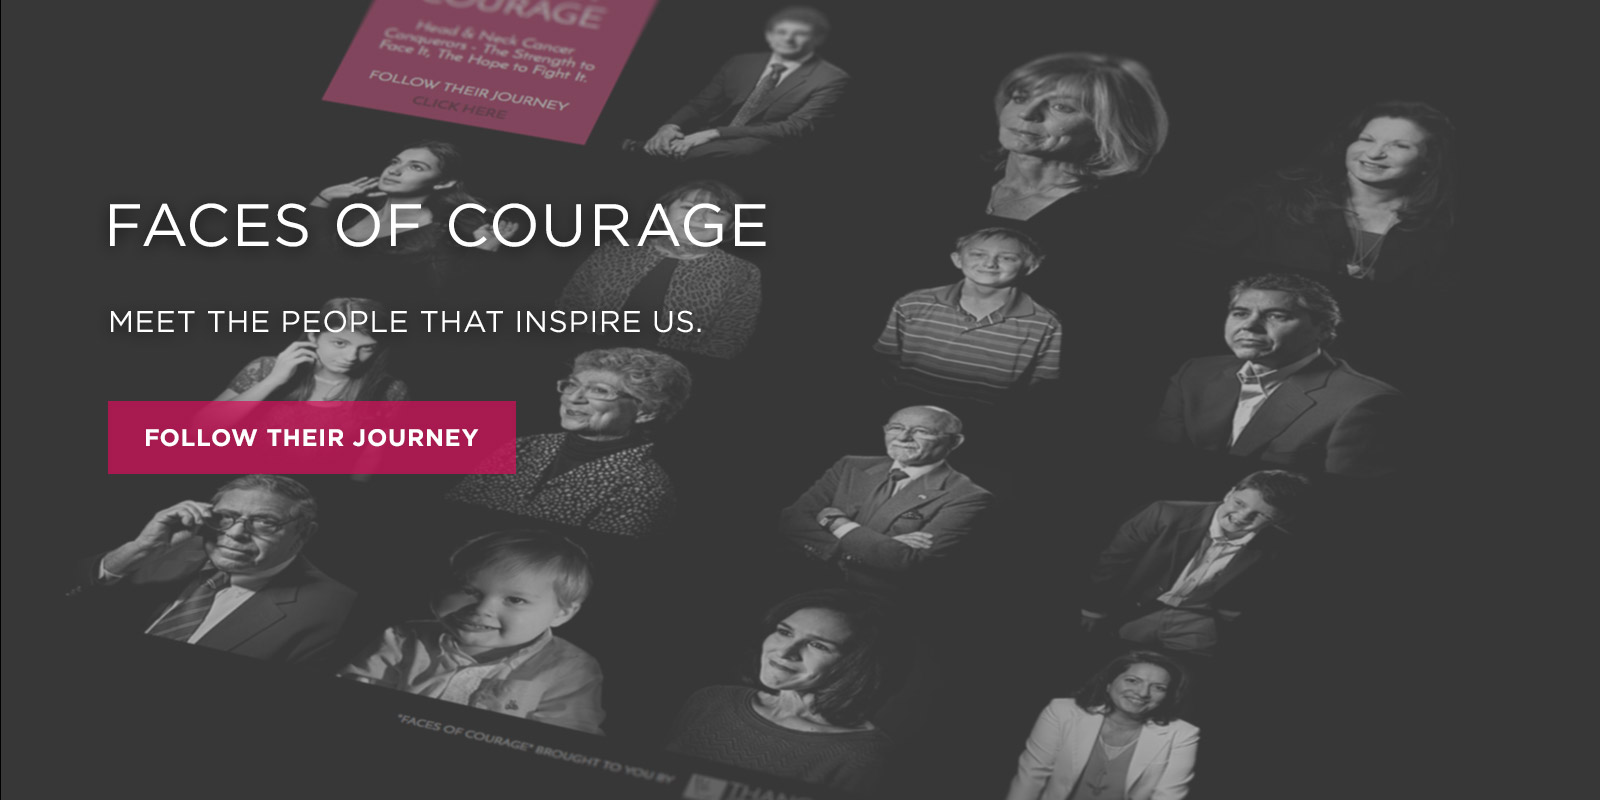 Faces of Courage - Meet the people who inspire us. Follow their journey.